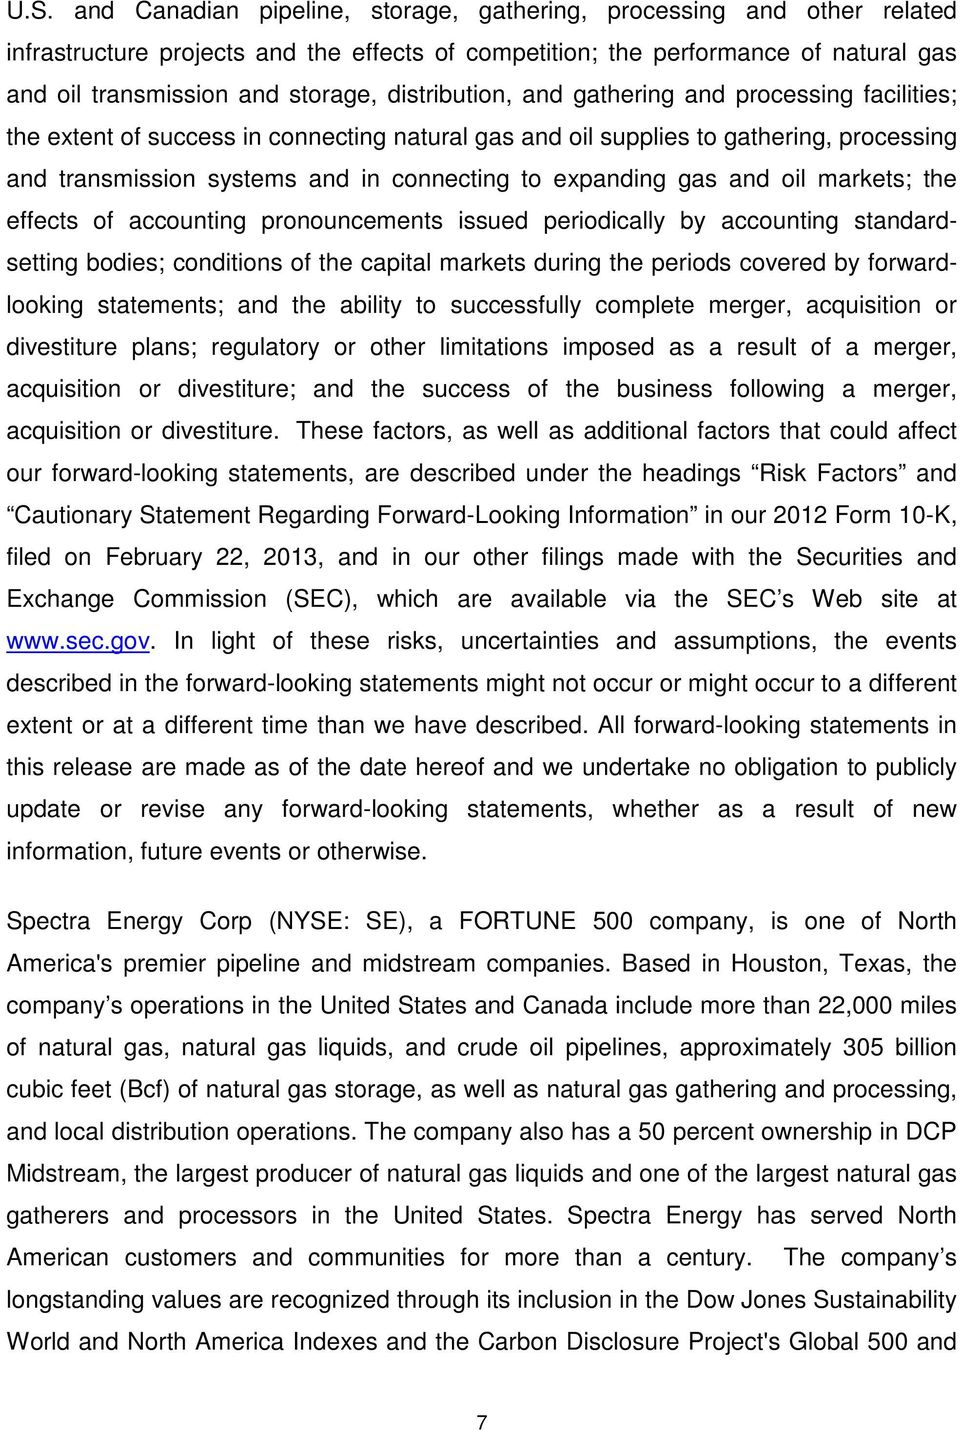 expanding gas and oil markets; the effects of accounting pronouncements issued periodically by accounting standardsetting bodies; conditions of the capital markets during the periods covered by